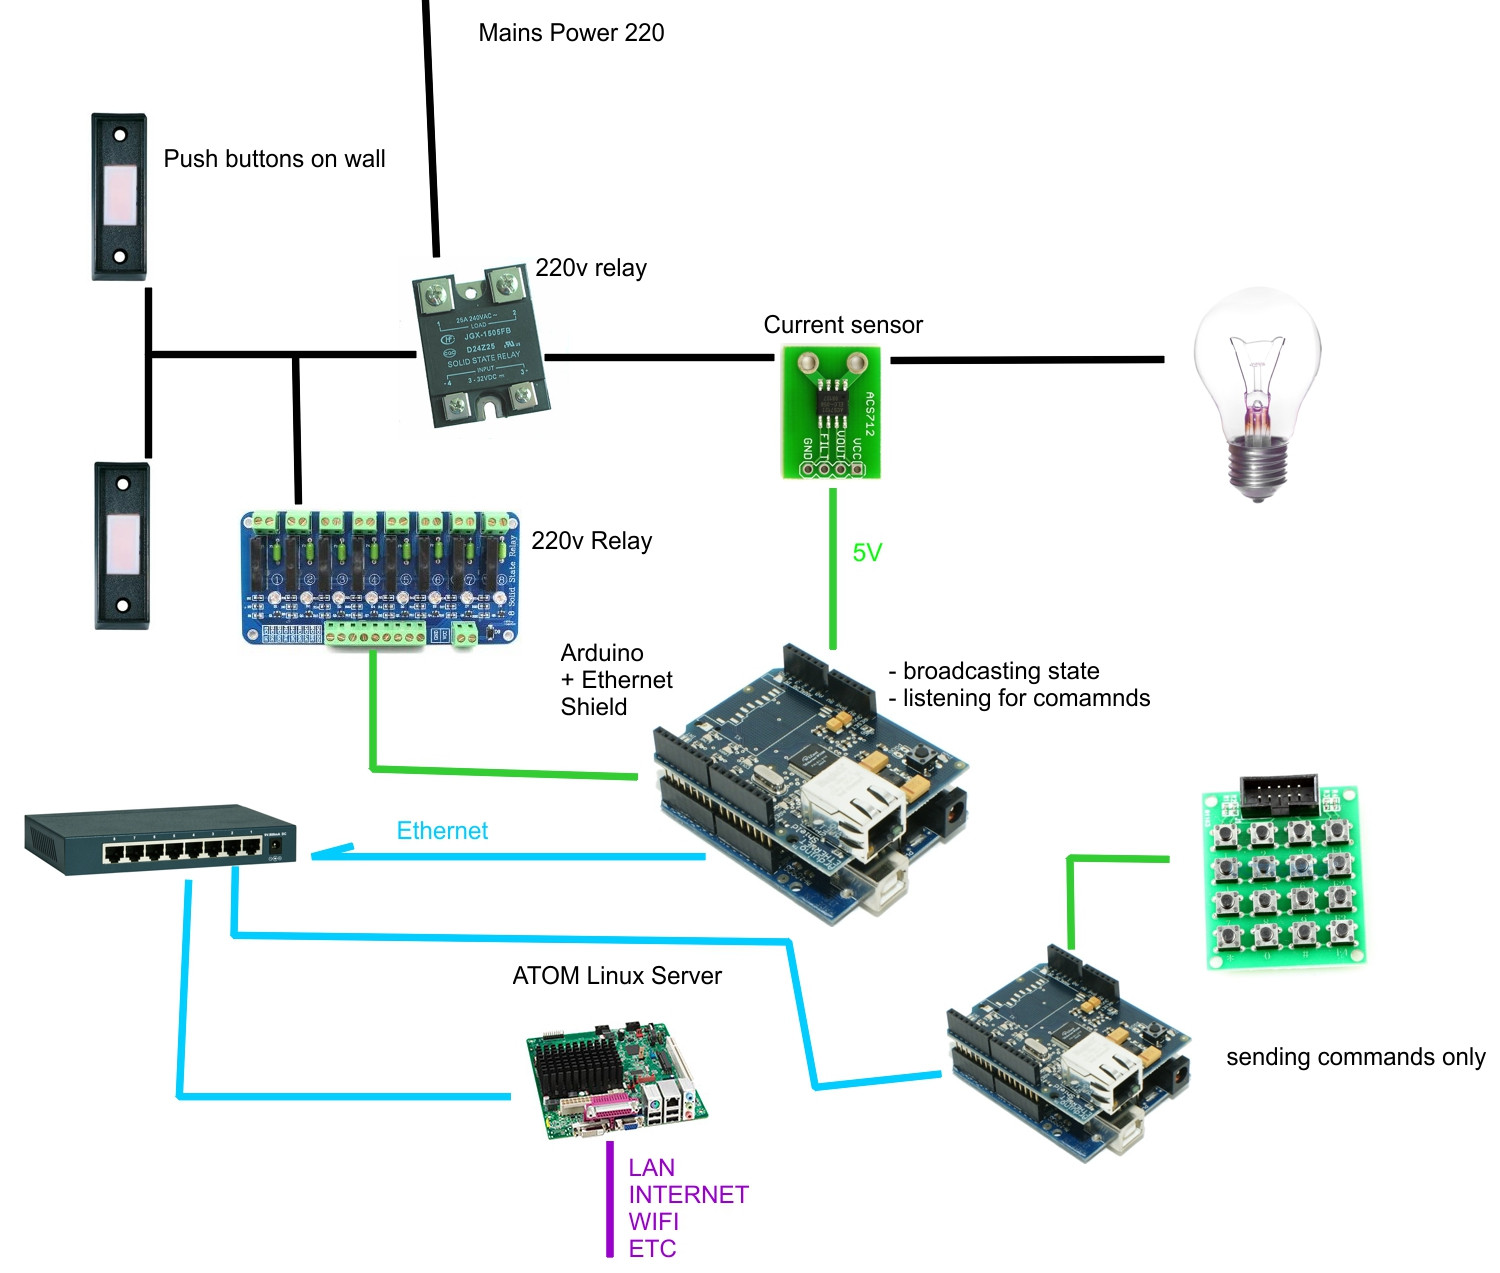 10a Coil Wiring Diagram Lighting Relay Any Obvious Problems With This Diy Home Automation